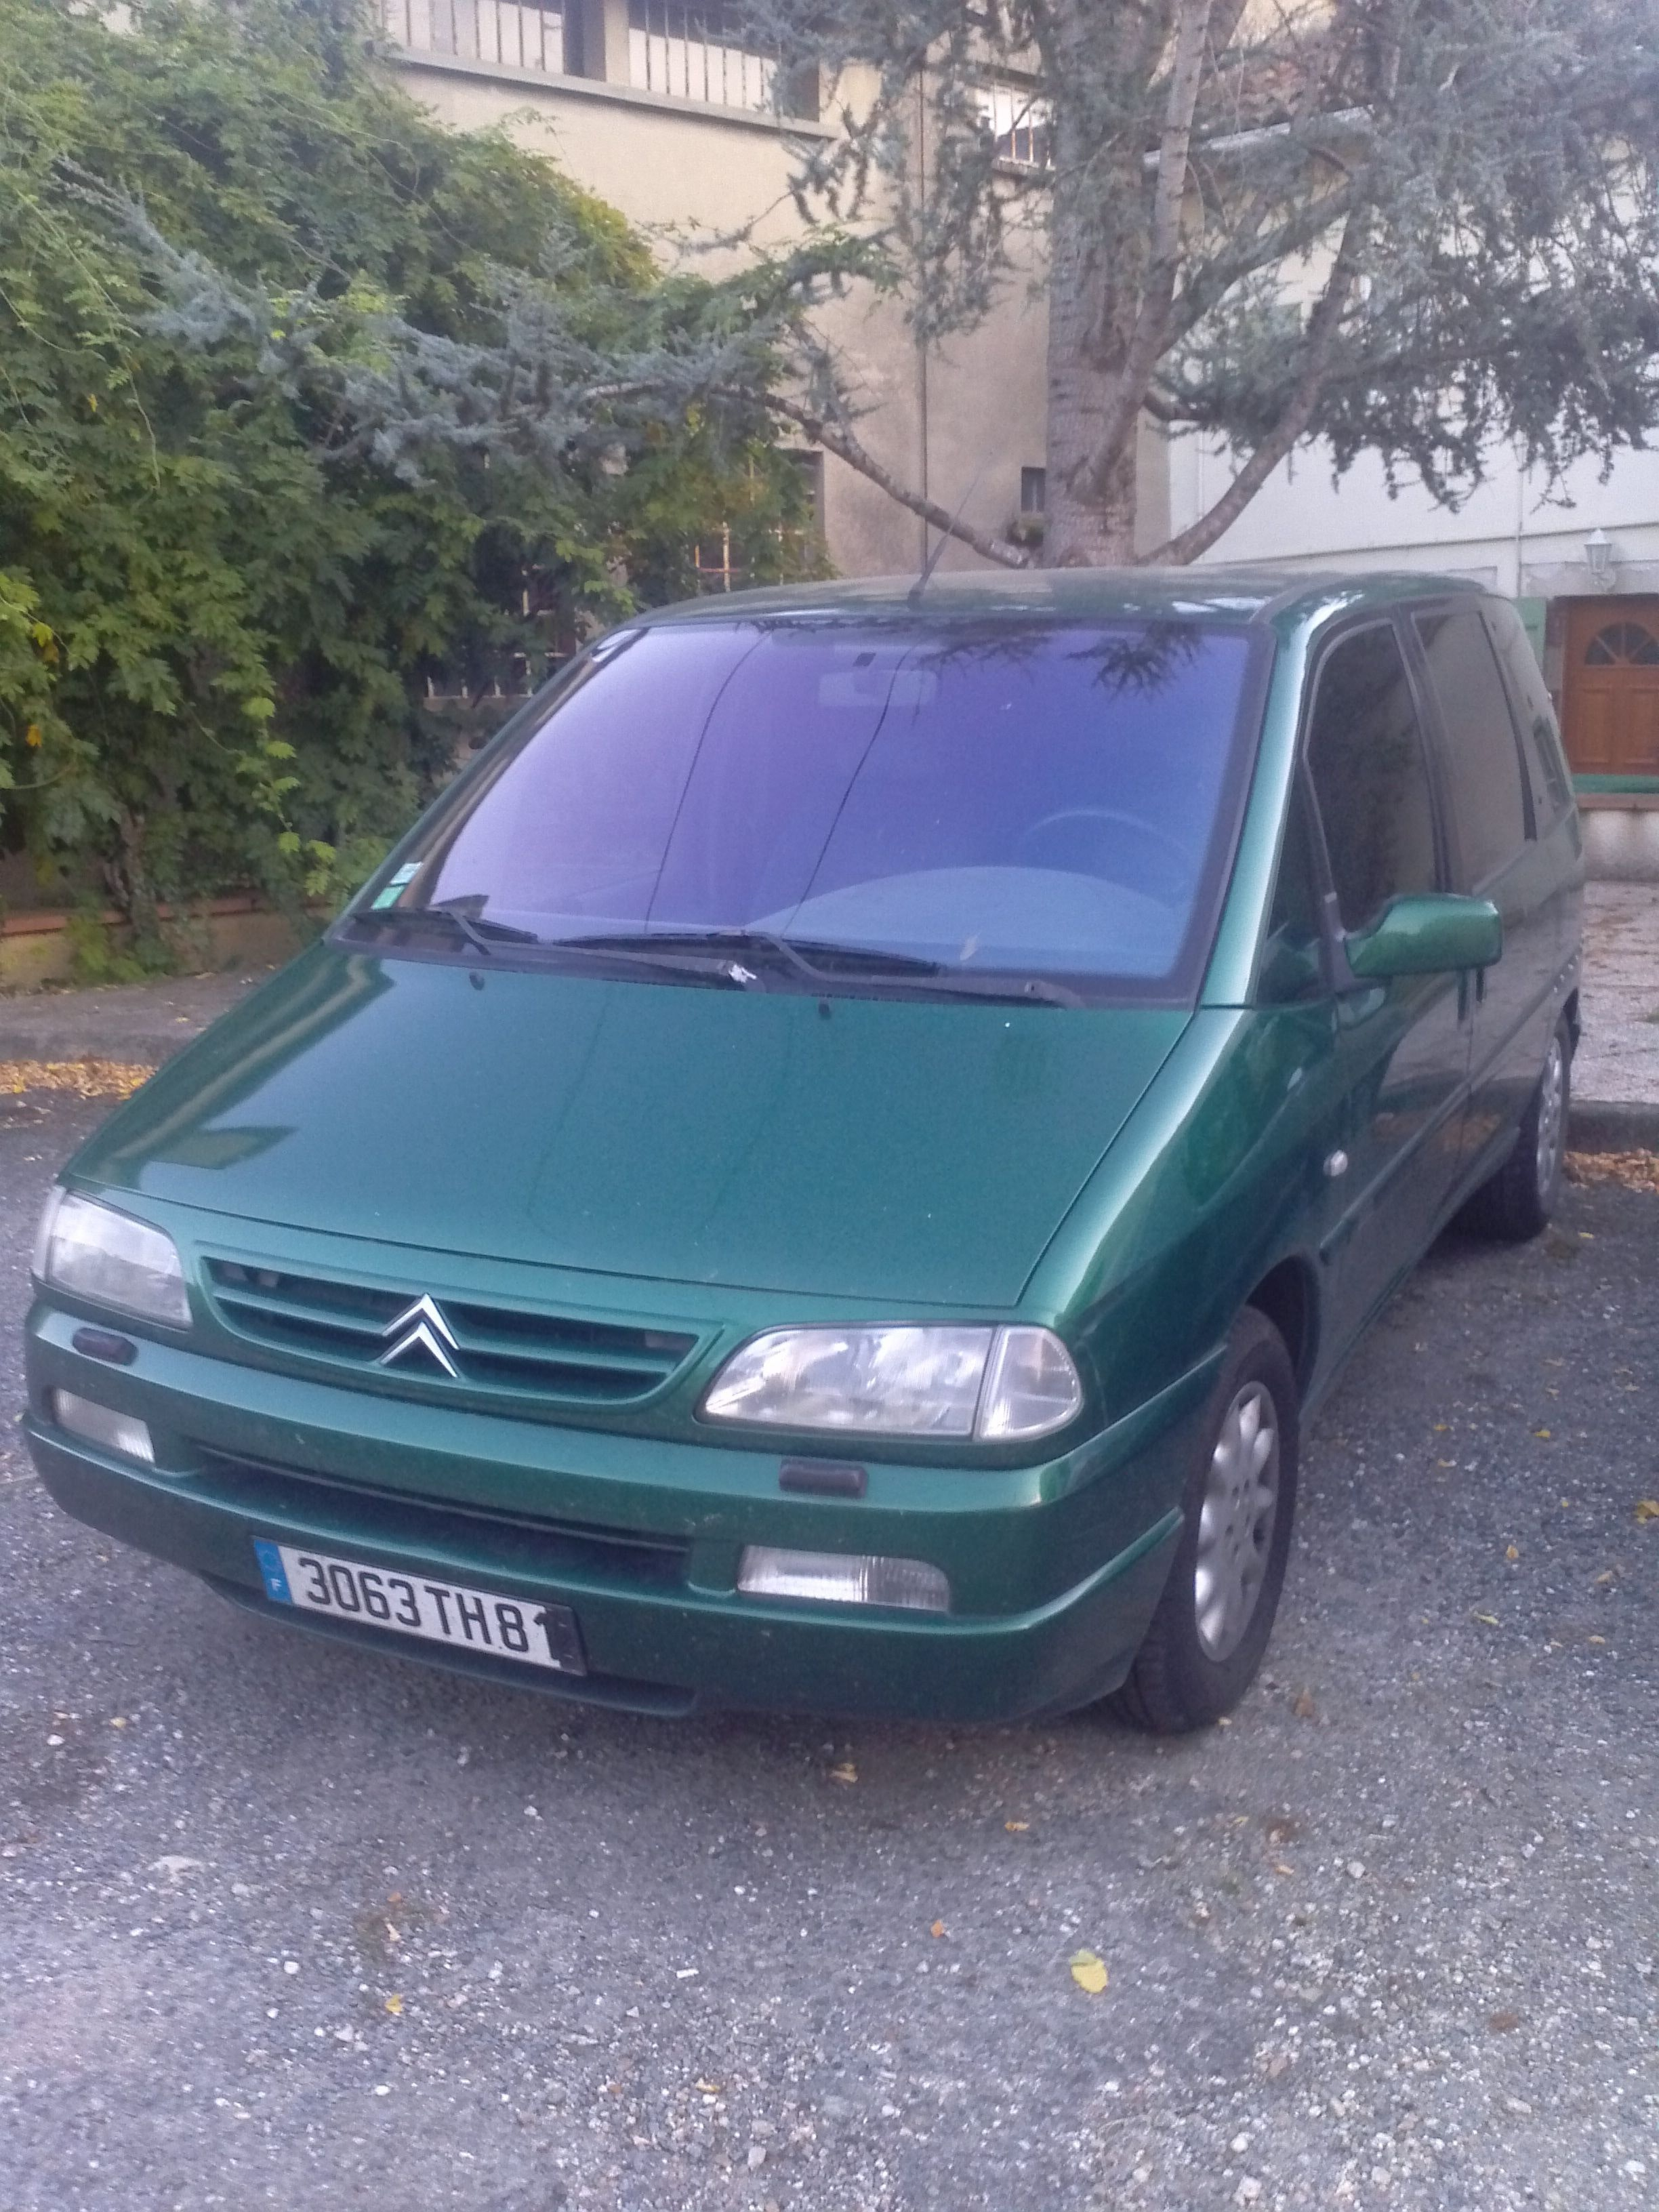 Citroen evasion 2.0 hdi, 2001, Diesel, 7 places